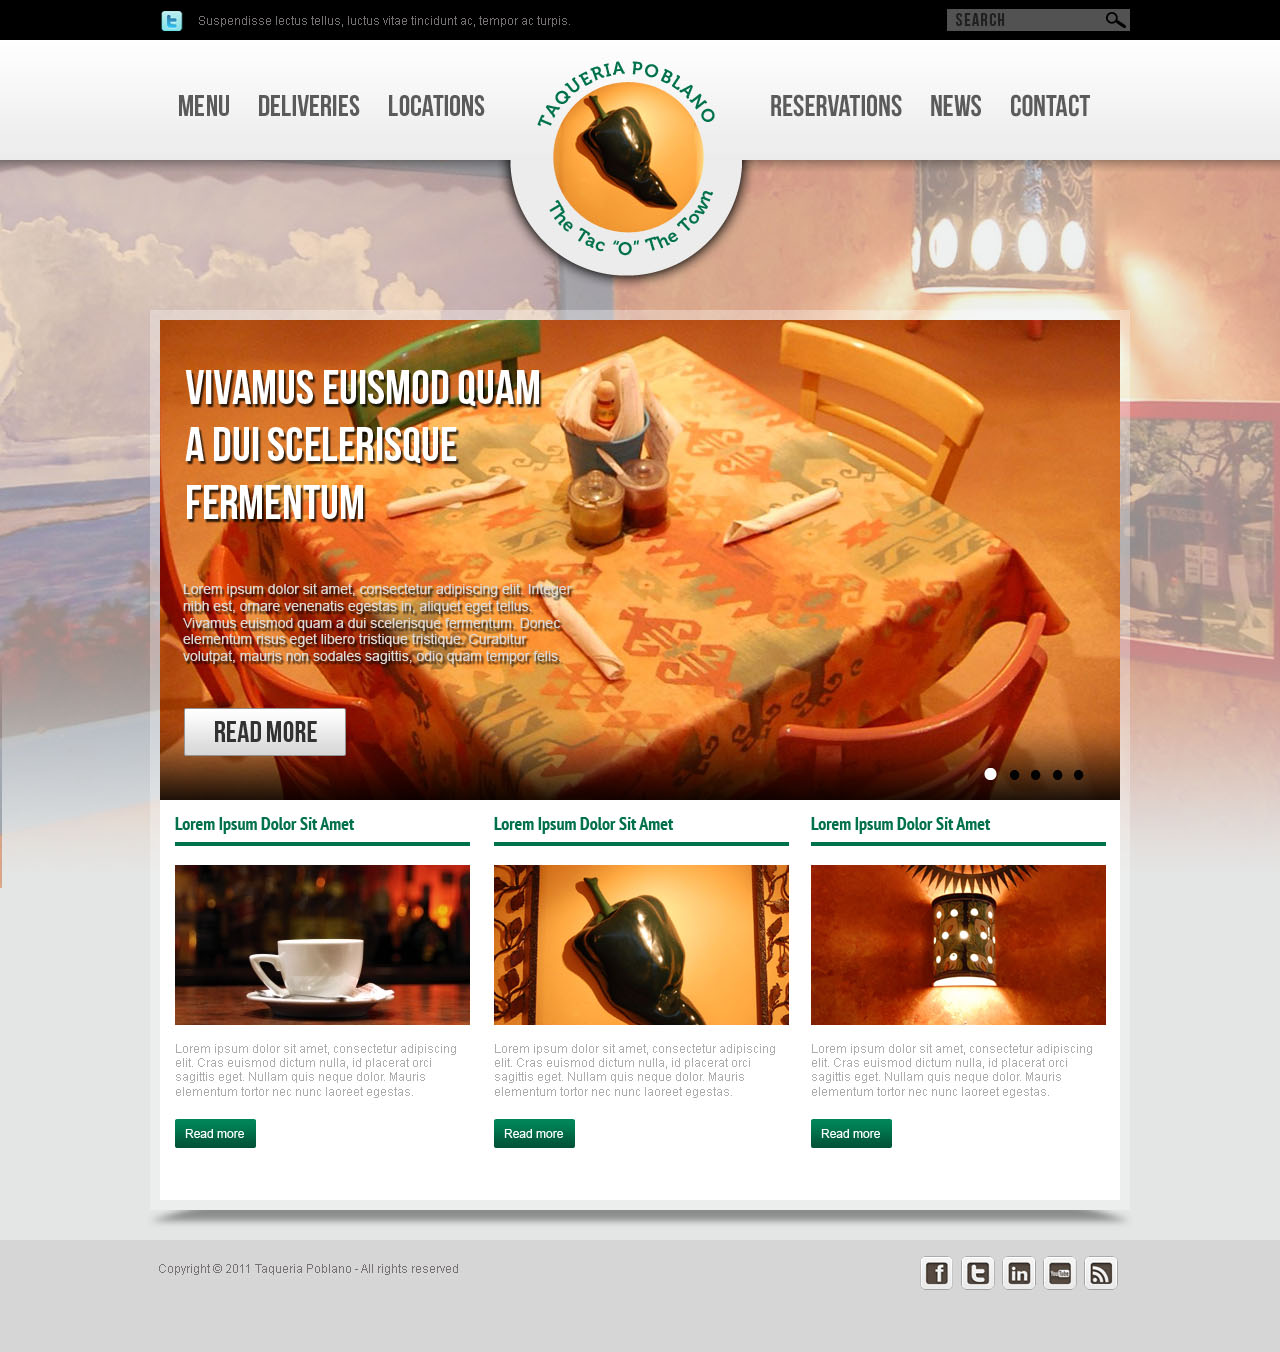 Web Page Design By Verdy Verdiansya   Entry No. 2 In The Web Page Design